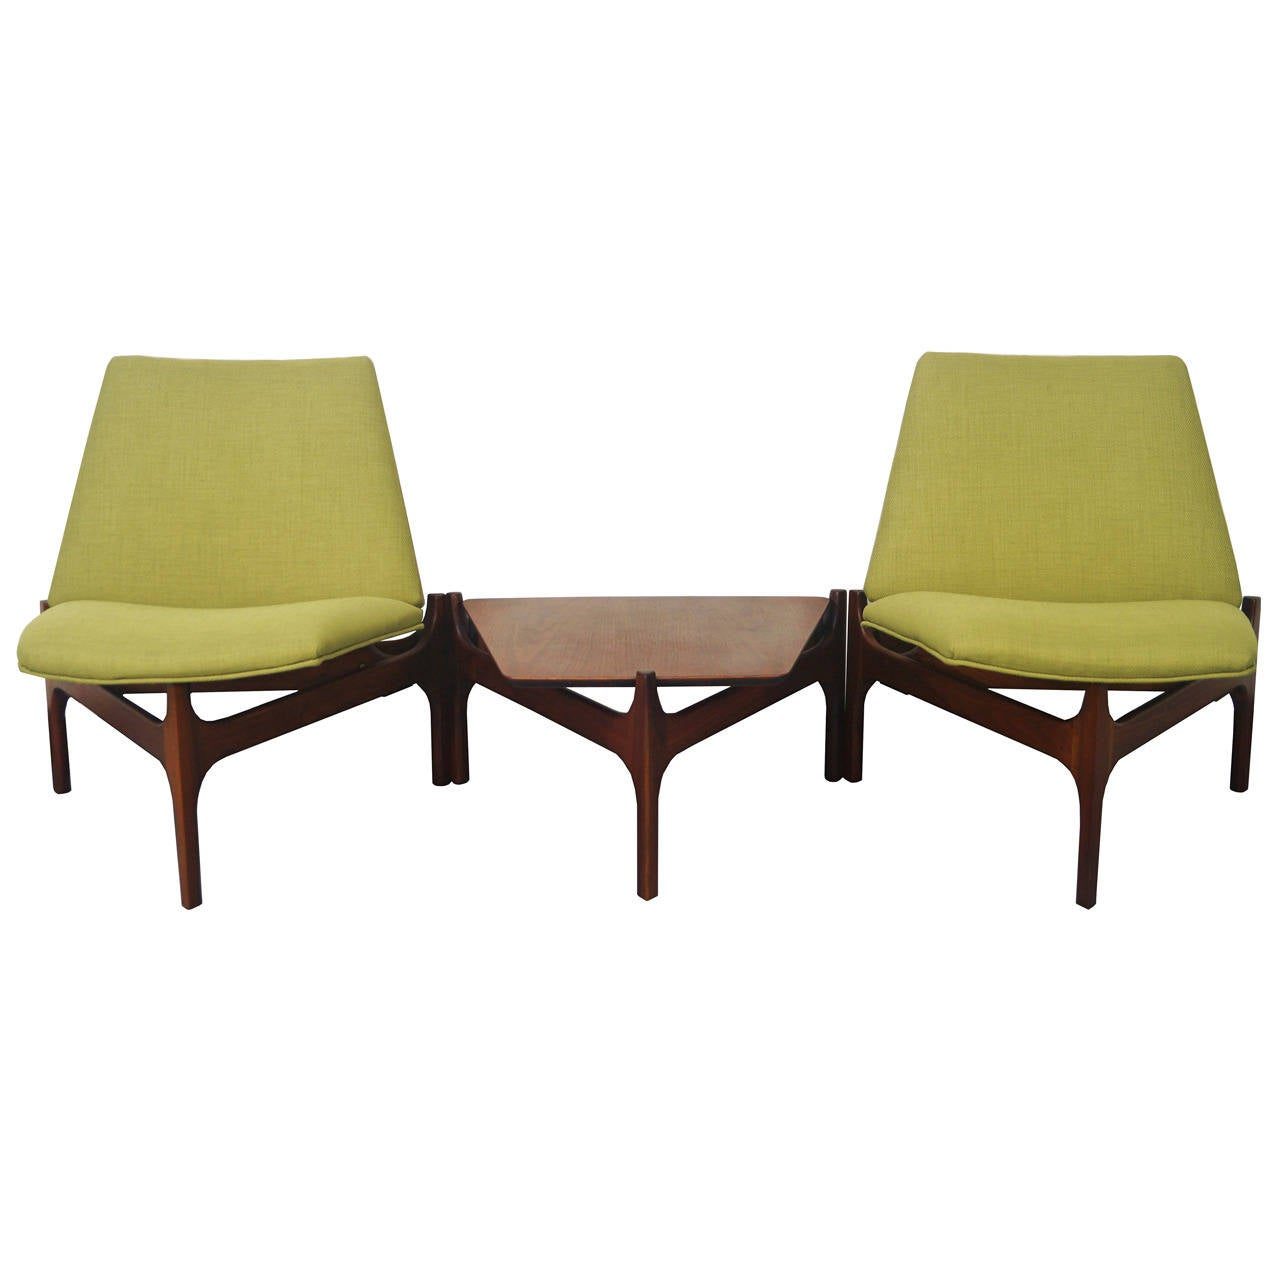 Vintage Seating Group by John Keal For Sale